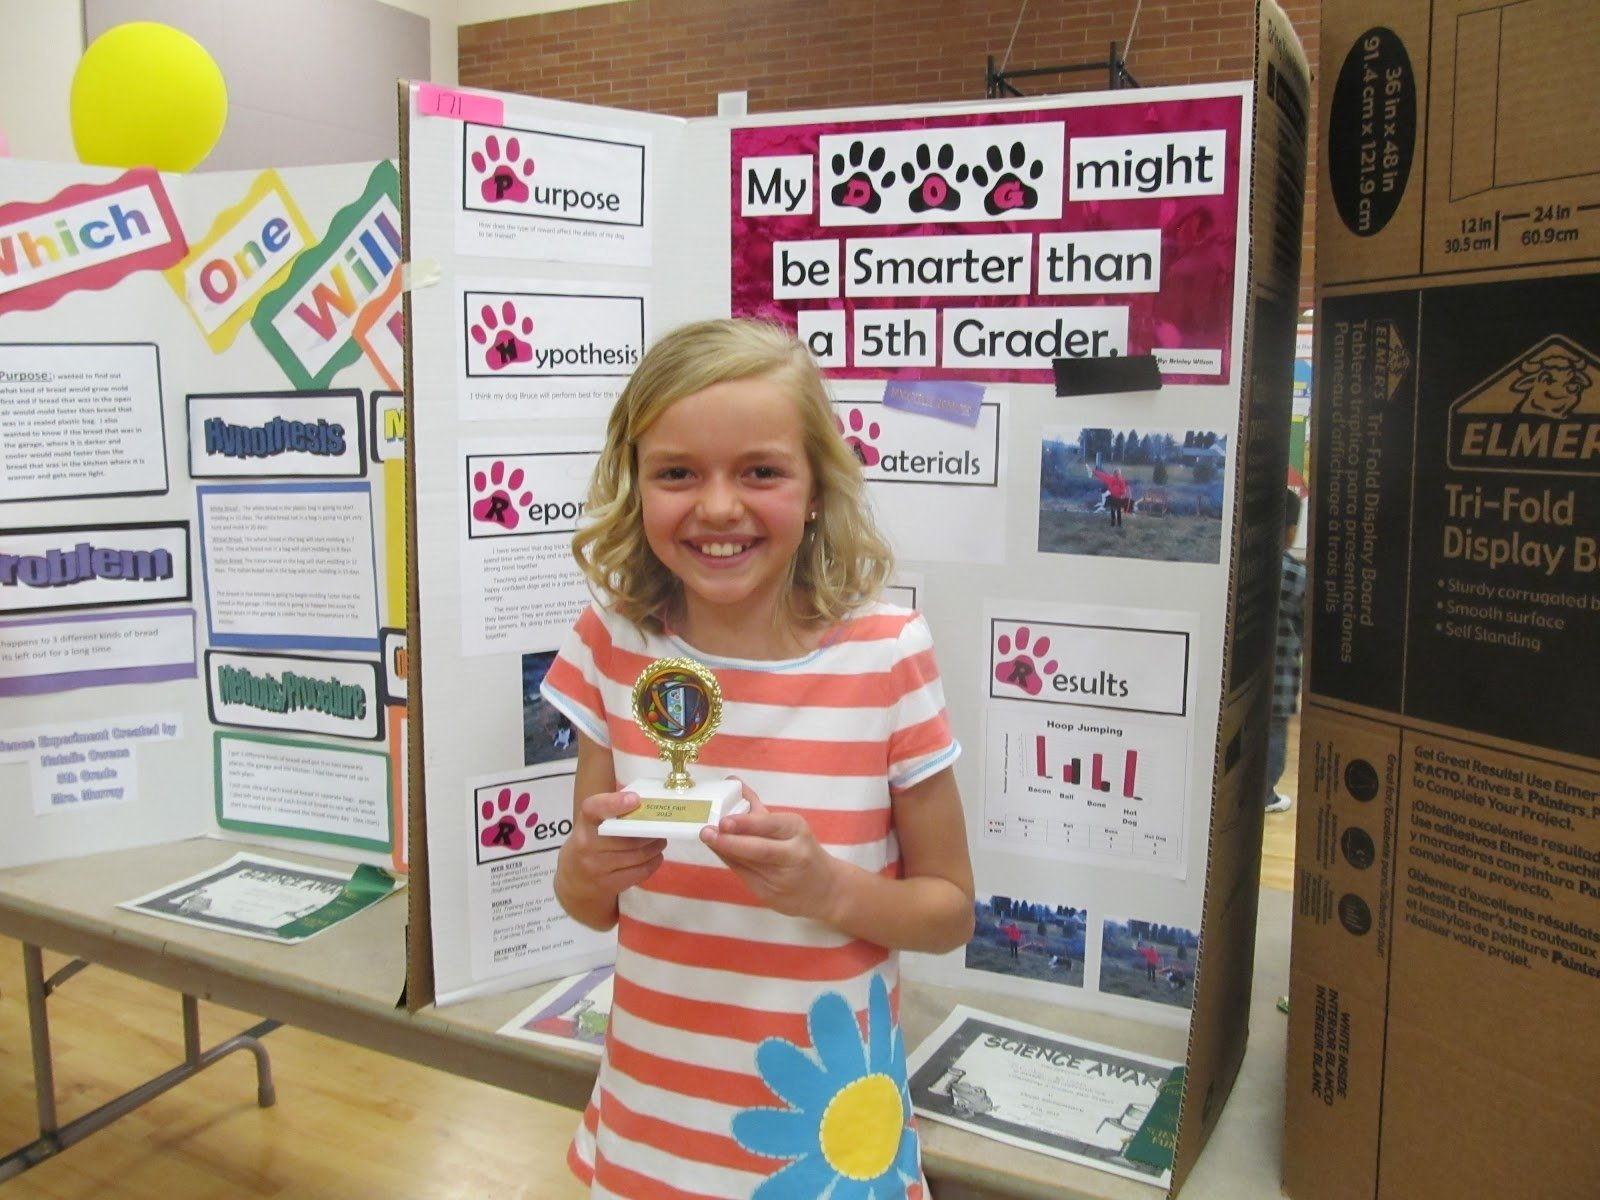 10 Most Popular Science Fair Project Ideas For Kids In 5Th Grade the science of my life updated declo science fair with newspaper 36